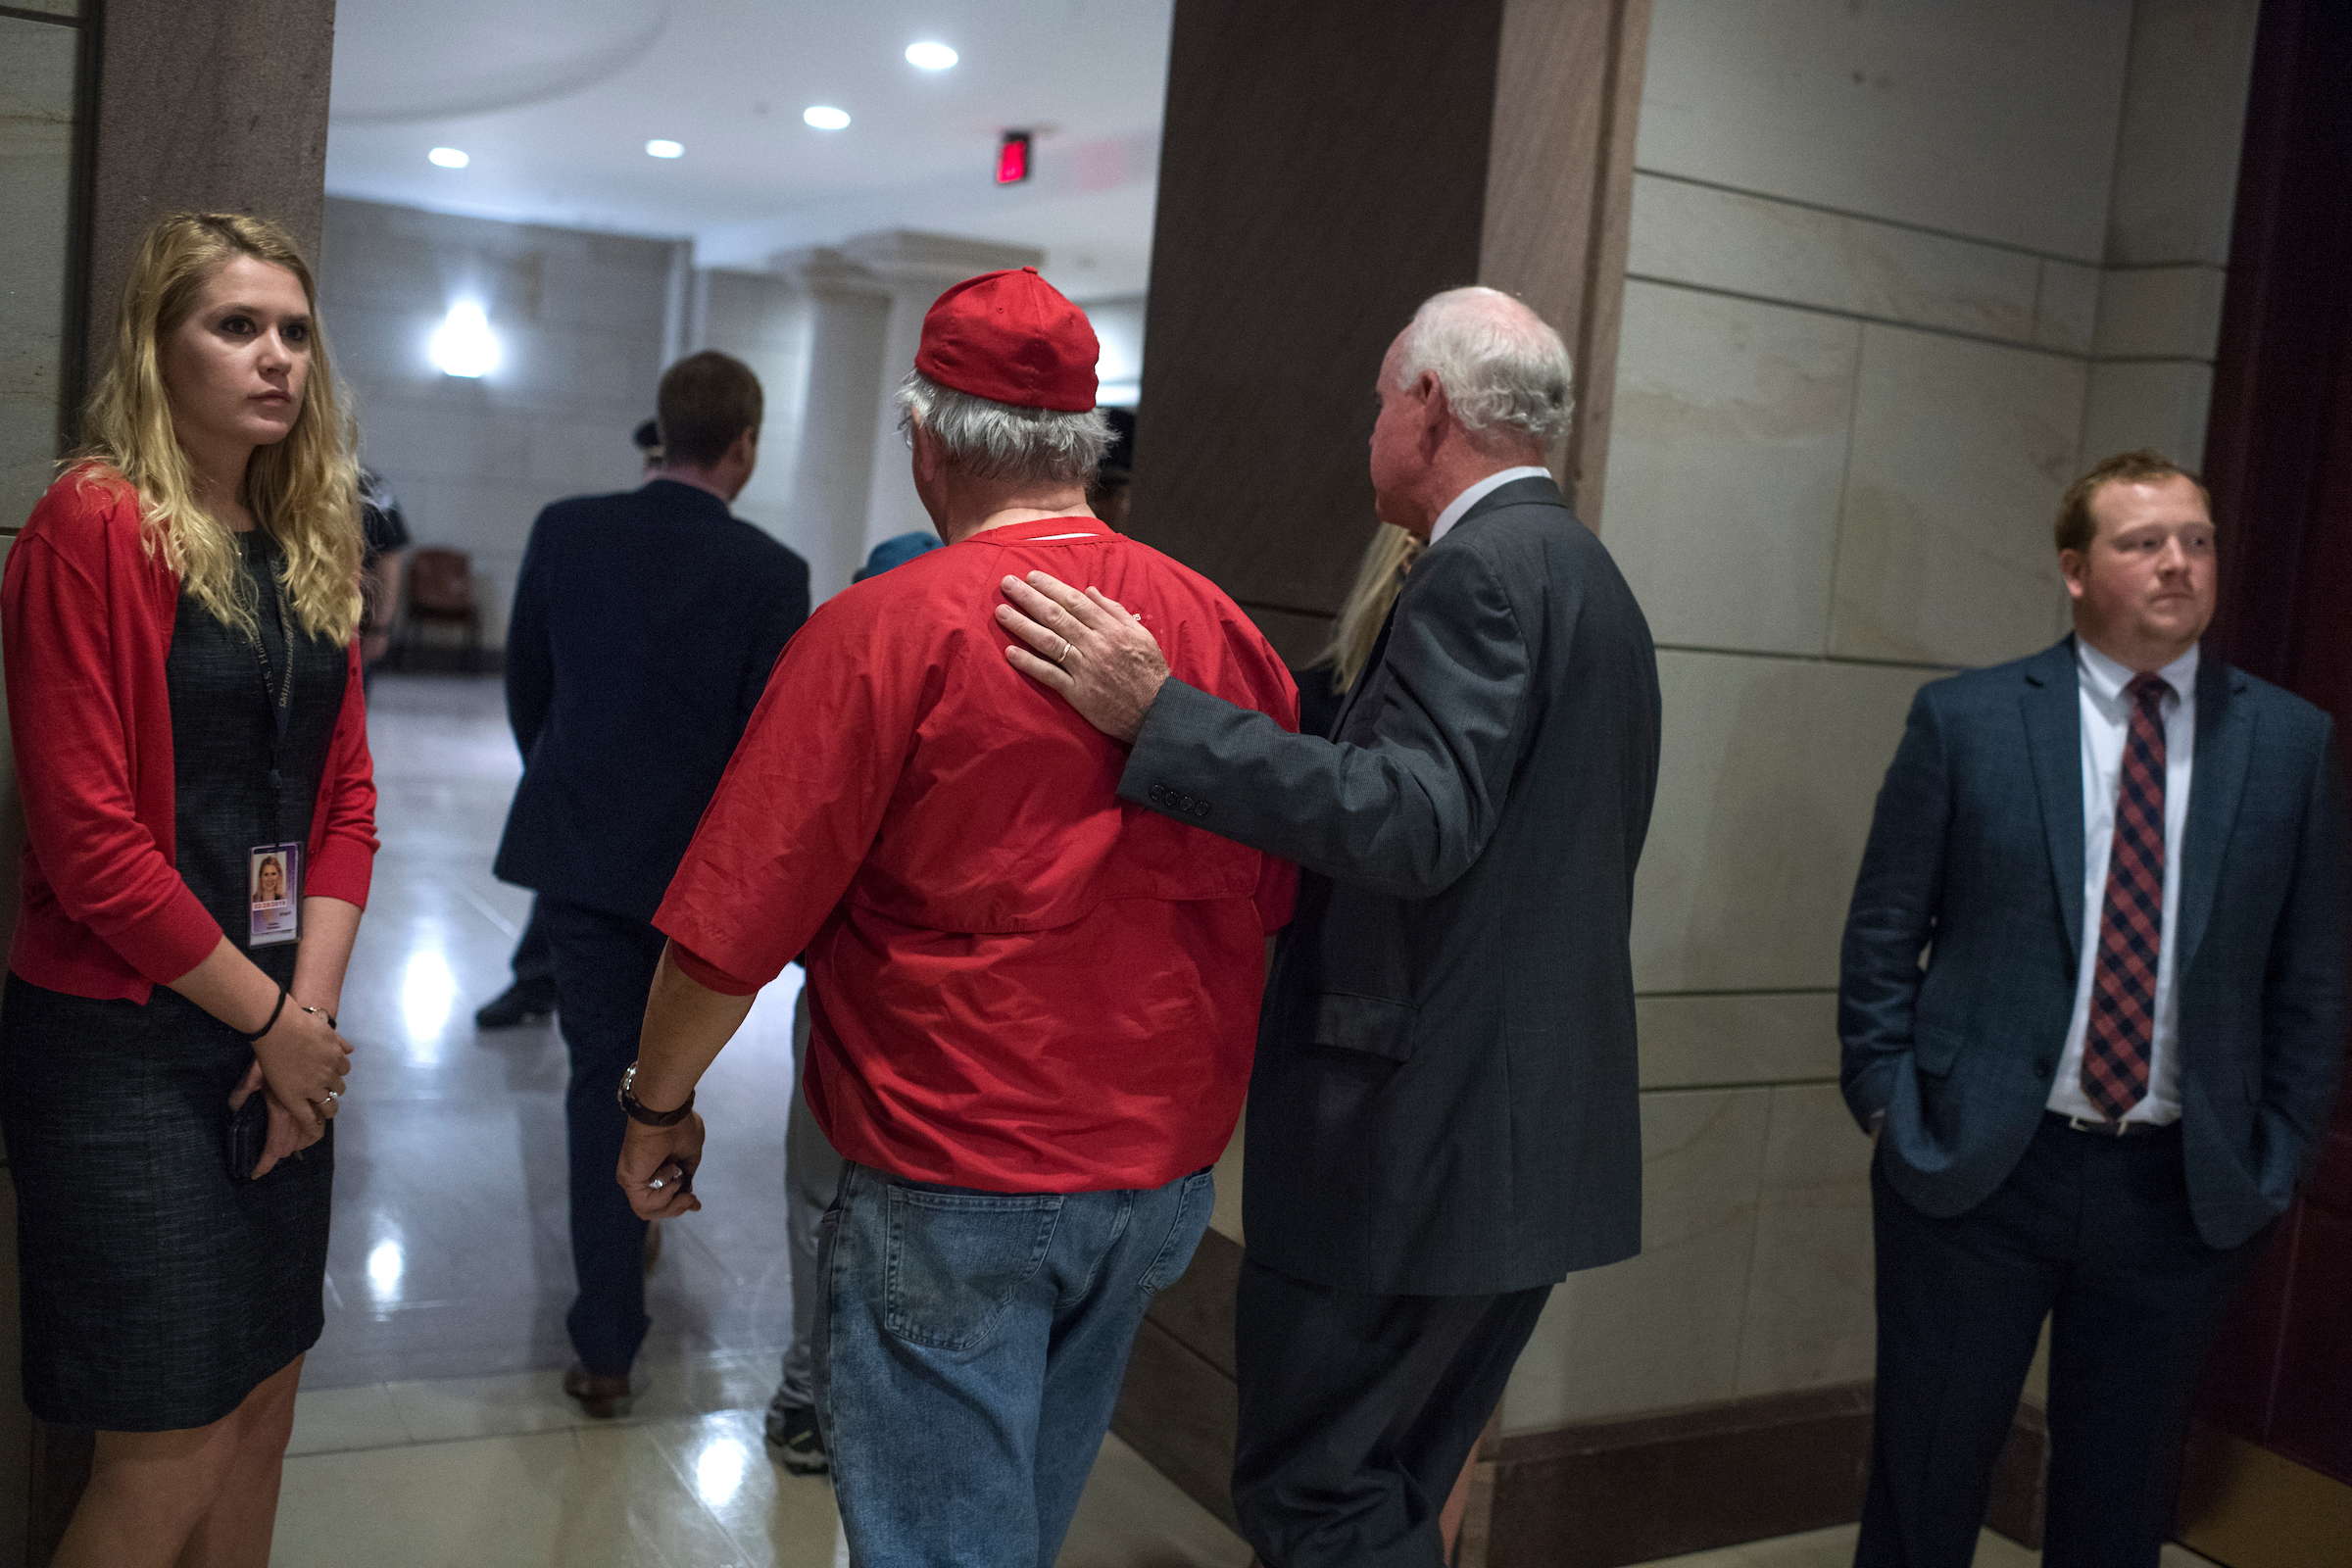 UNITED STATES - JUNE 14: Reps. Joe Barton, R-Texas, left, and Patrick Meehan, R-Pa., make their way to a meeting in the Capitol after a shooting at the Republican's baseball practice in Alexandria on June 14, 2017. (Photo By Tom Williams/CQ Roll Call)